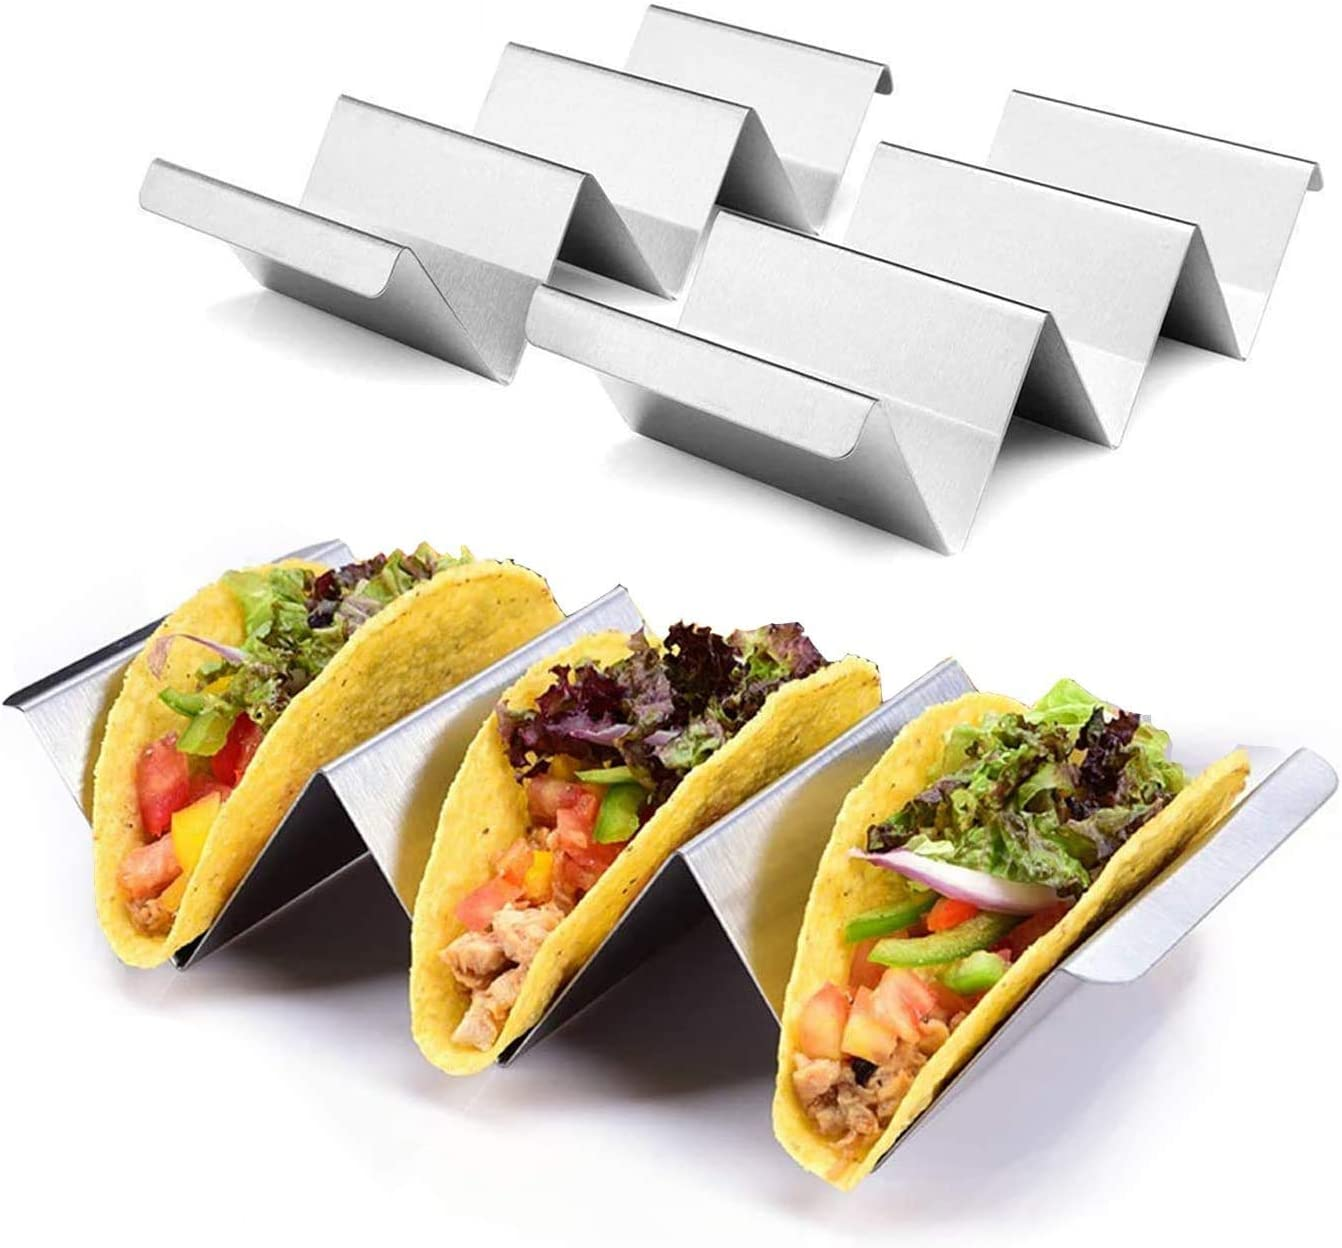 """Taco Holder Stands, Set of 4 - Oven & Grill Safe Stainless Steel Taco Racks Taco Trays with Handle, Taco Rack Hold Up To 3 Shells for Restaurant & Home Kitchens, Dishwasher Safe - Size 8.5"""" x 4"""" x 2"""""""